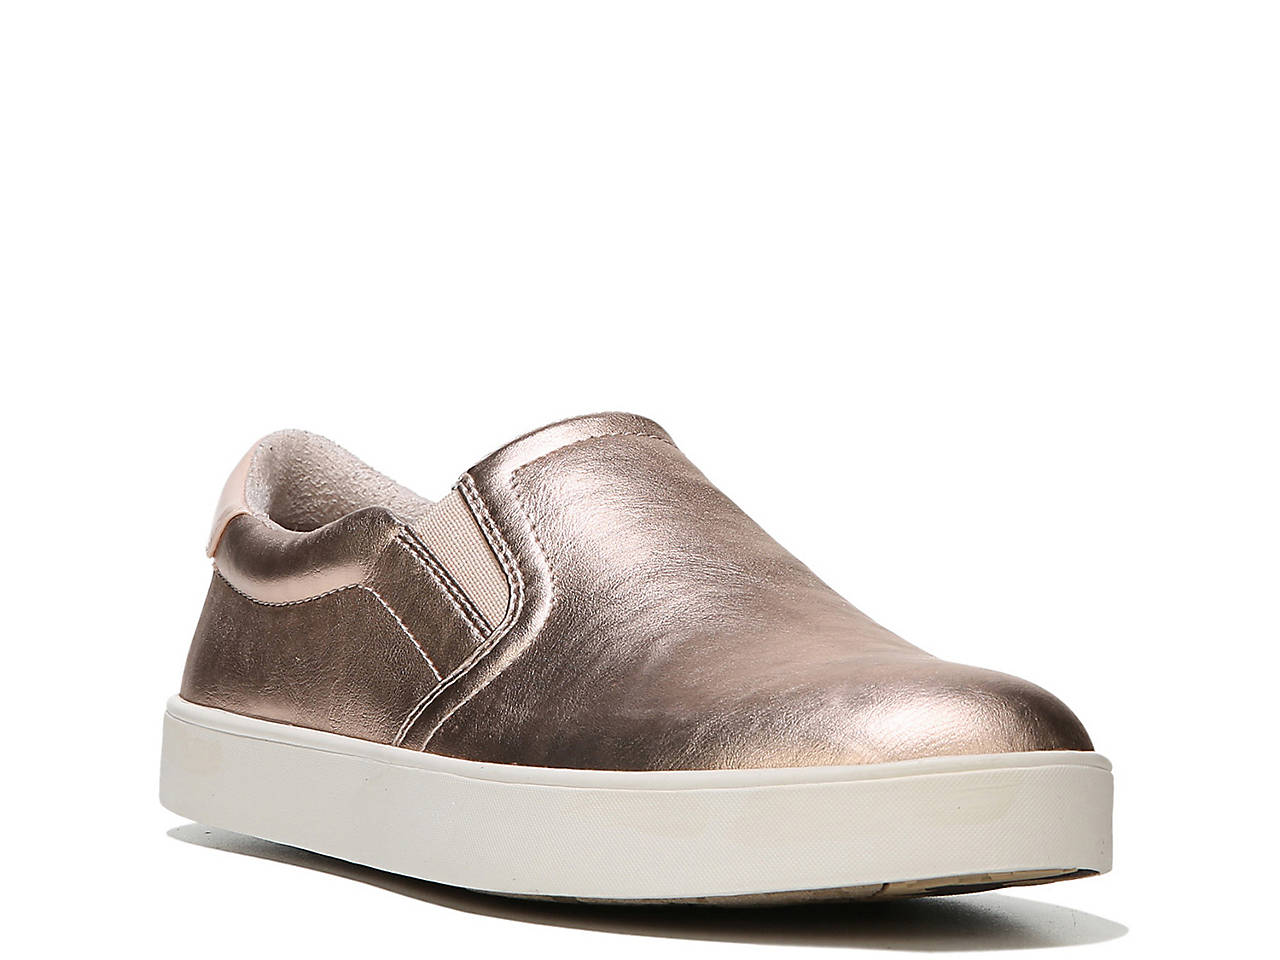 Dr. Scholl's Madi Women's ... Slip-On Shoes fast delivery cheap online buy cheap classic sale the cheapest discount 2014 unisex top quality online KbbQs